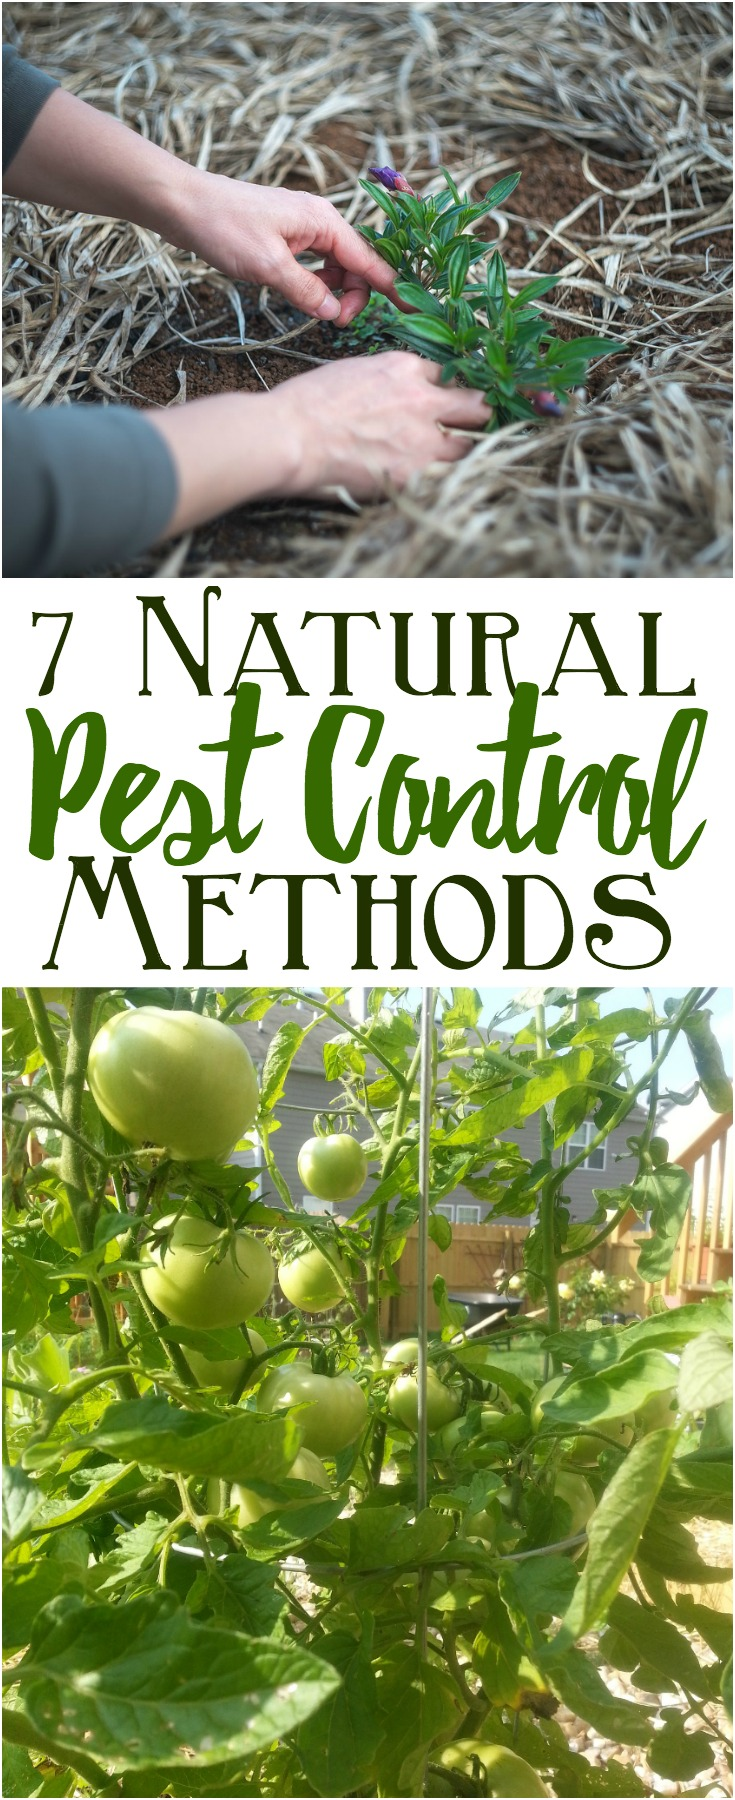 Try these natural pest control methods for garden pest control! Natural sprays, soil fertility and companion planting can help reduce or eliminate unwanted pests in your garden and help your garden thrive.